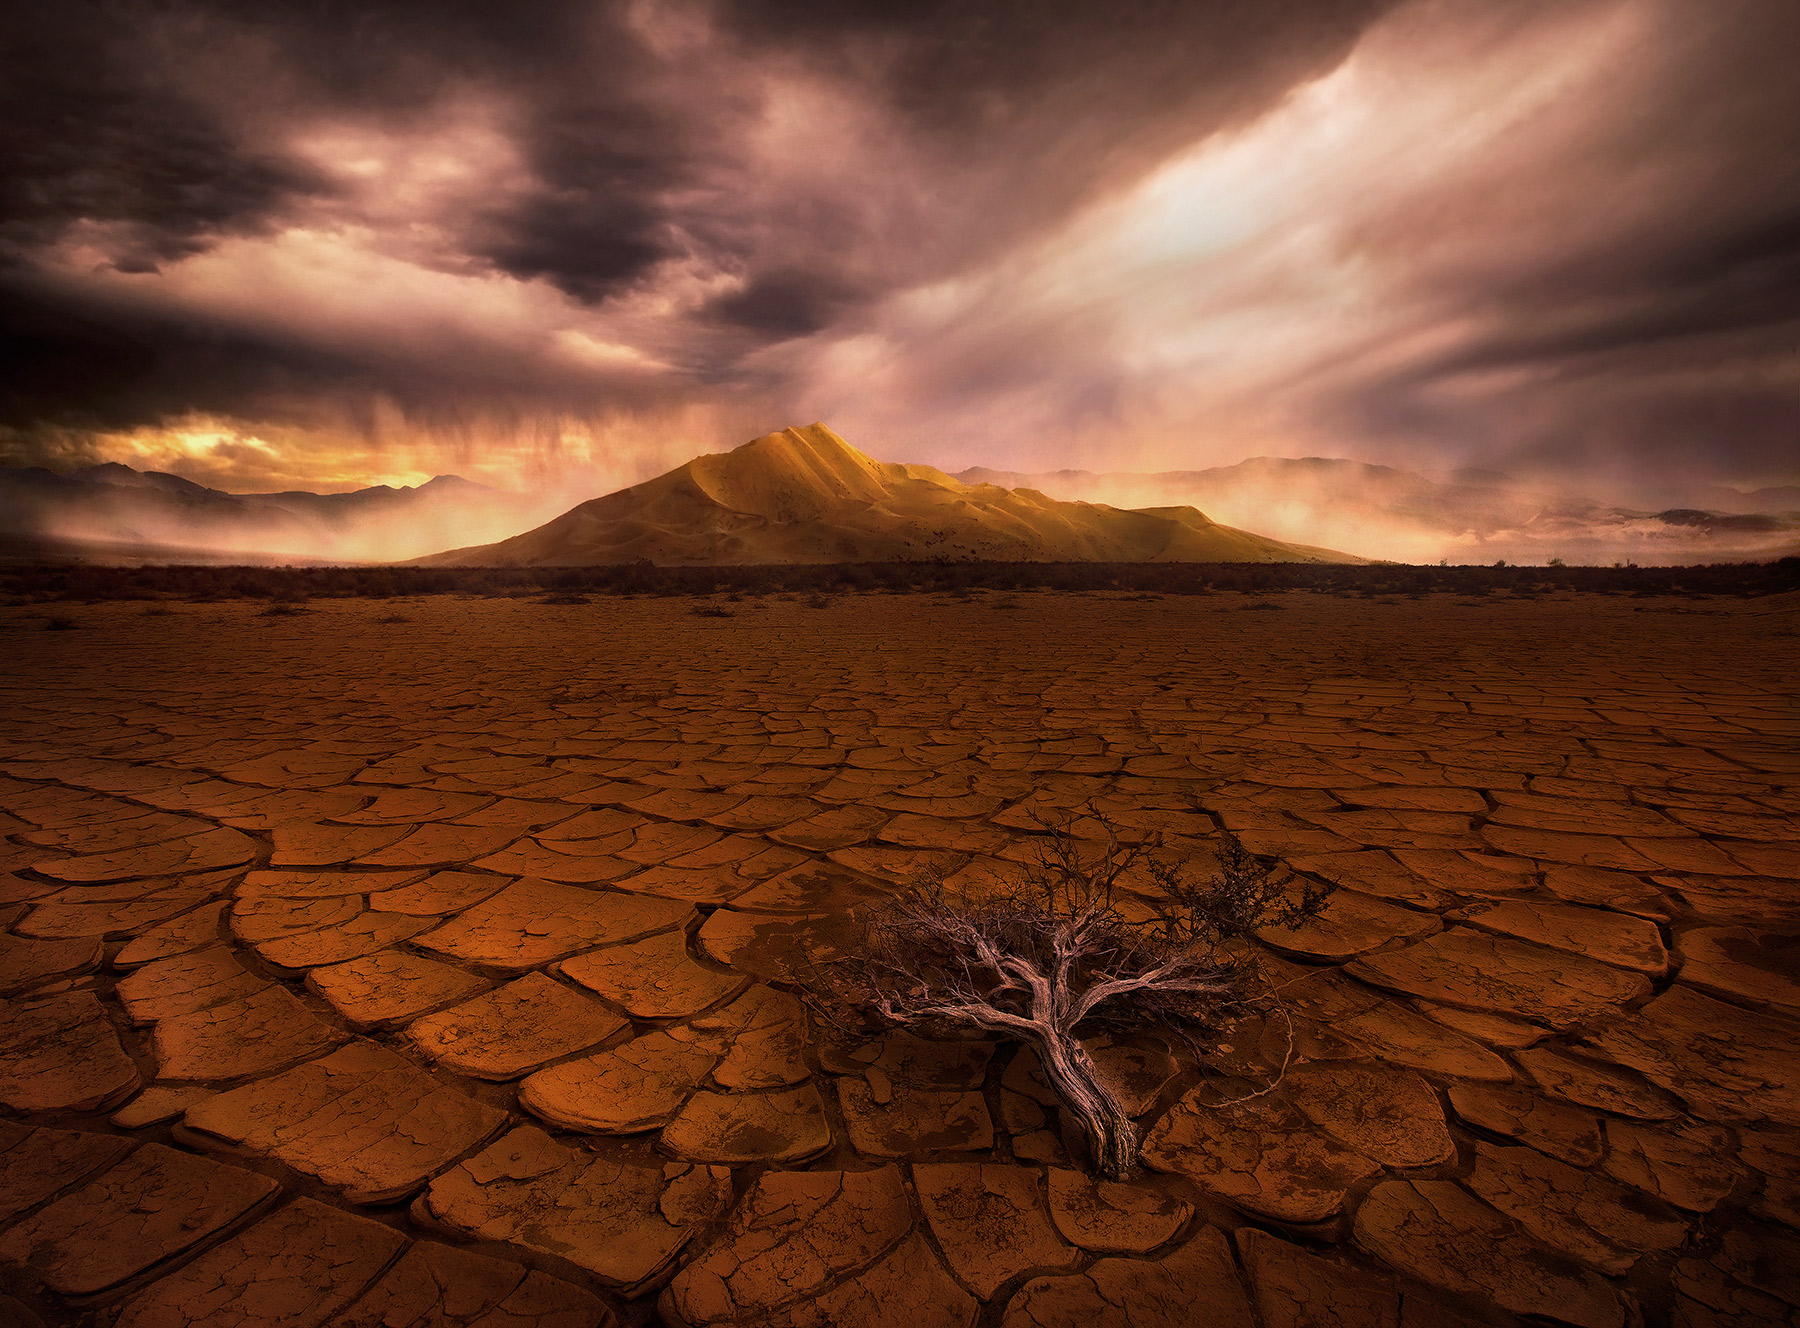 incredible, dunse, sandstorm, california, eureka valley, lone, sagebrush, cracked, desert, photo